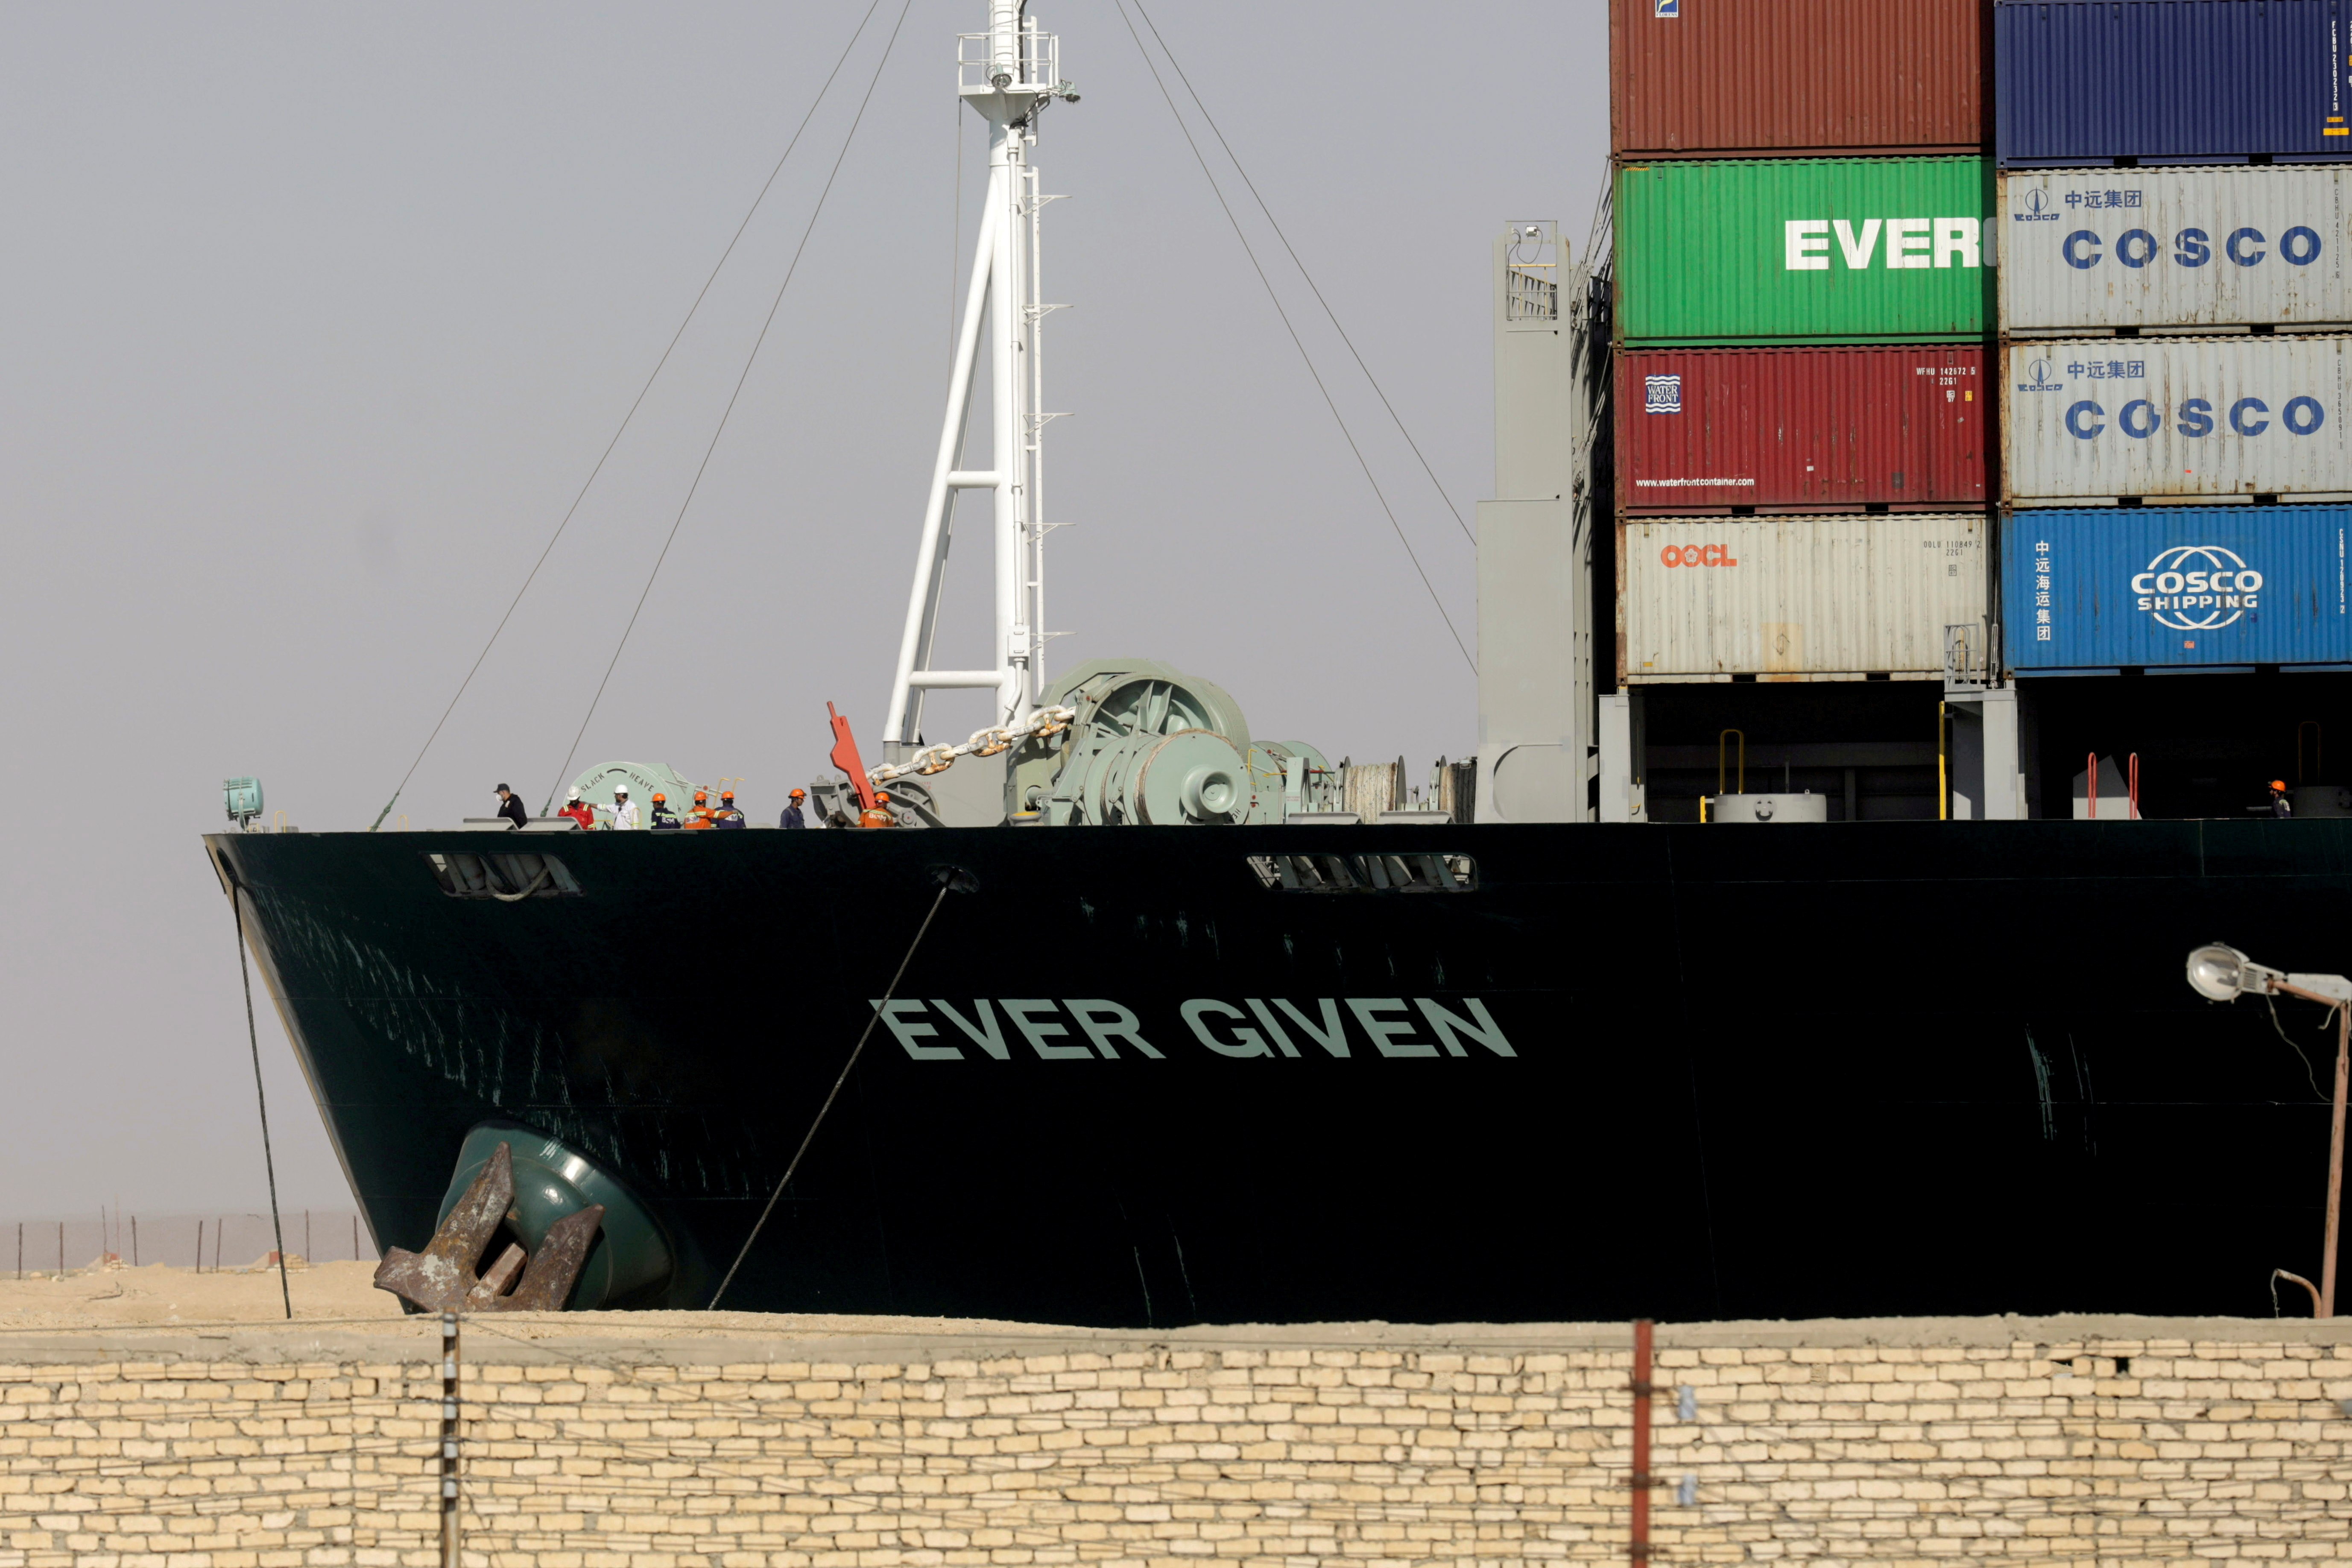 Ship Ever Given, one of the world's largest container ships, is seen after it was fully floated in Suez Canal, Egypt March 29, 2021. REUTERS/Mohamed Abd El Ghany//File Photo